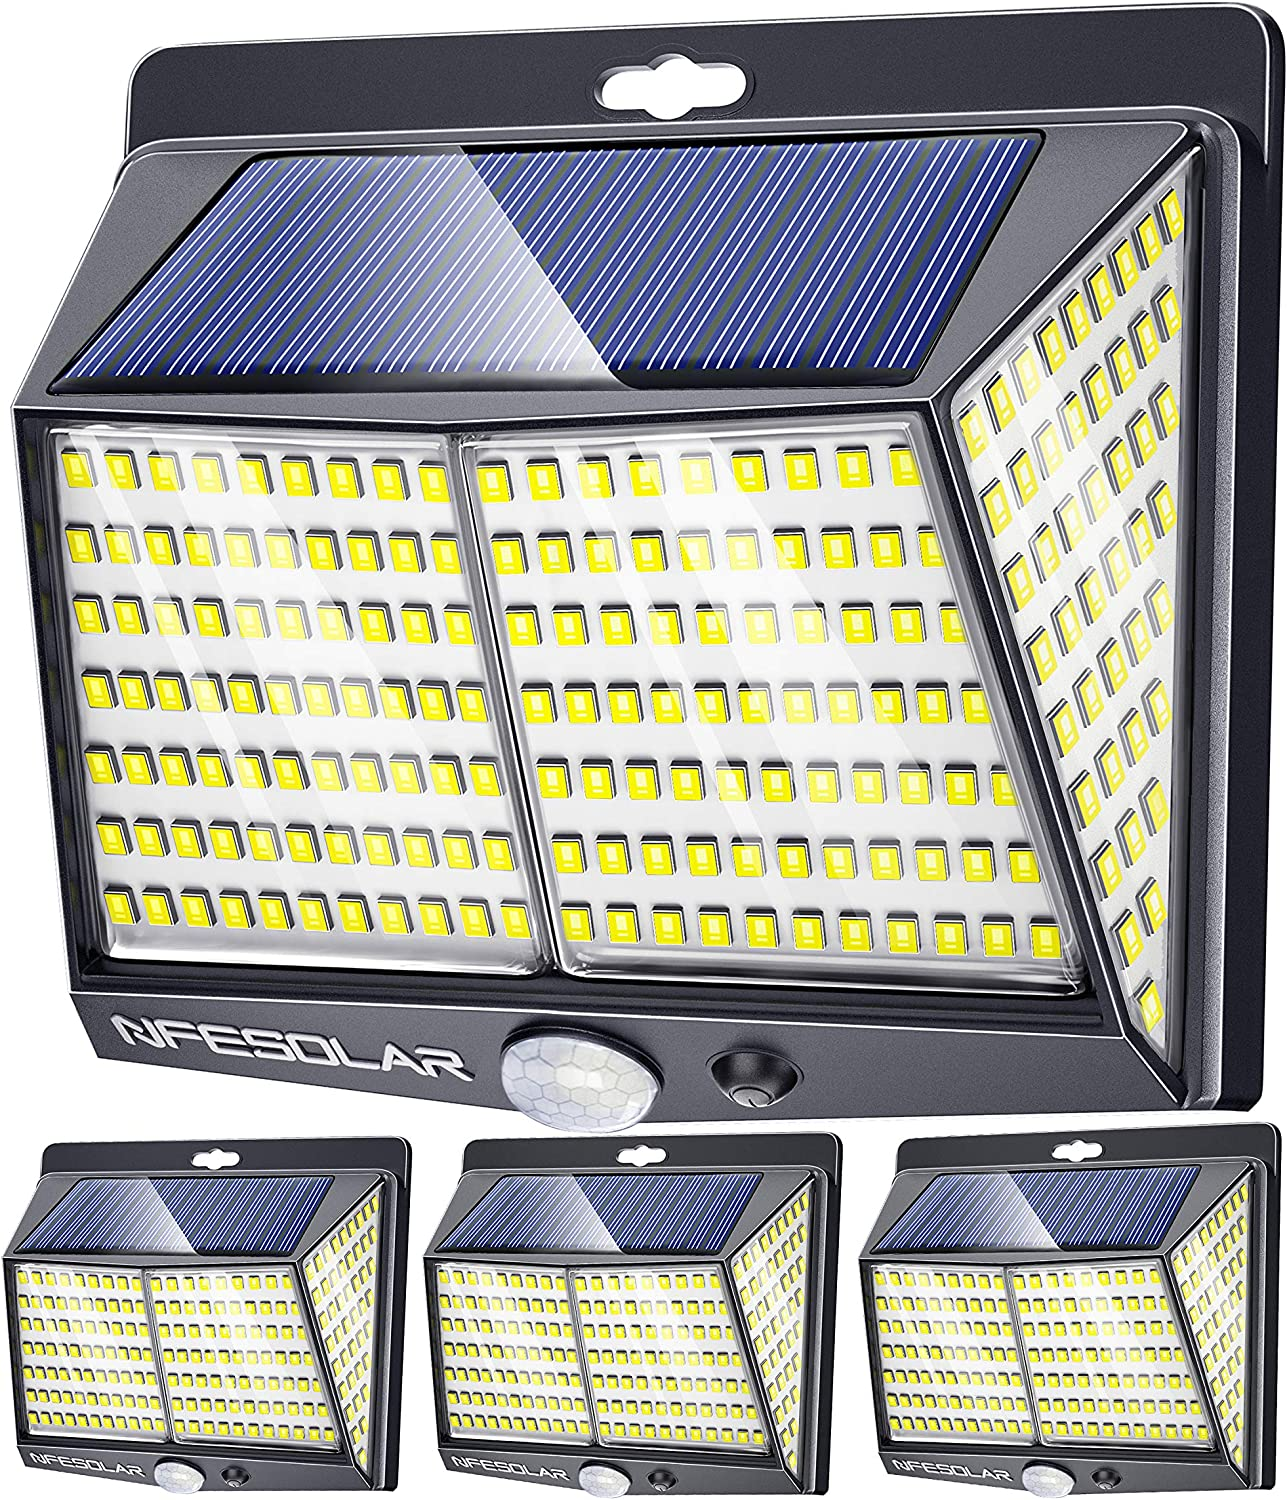 NFESOLAR Solar Motion Sensor Lights, Solar Lights Outdoor 228 LED with Lights Reflector and 3 Lighting Modes Wall Lights, IP65 Waterproof Solar Security Lights for Garden Patio Garage Yard(4 Pack)